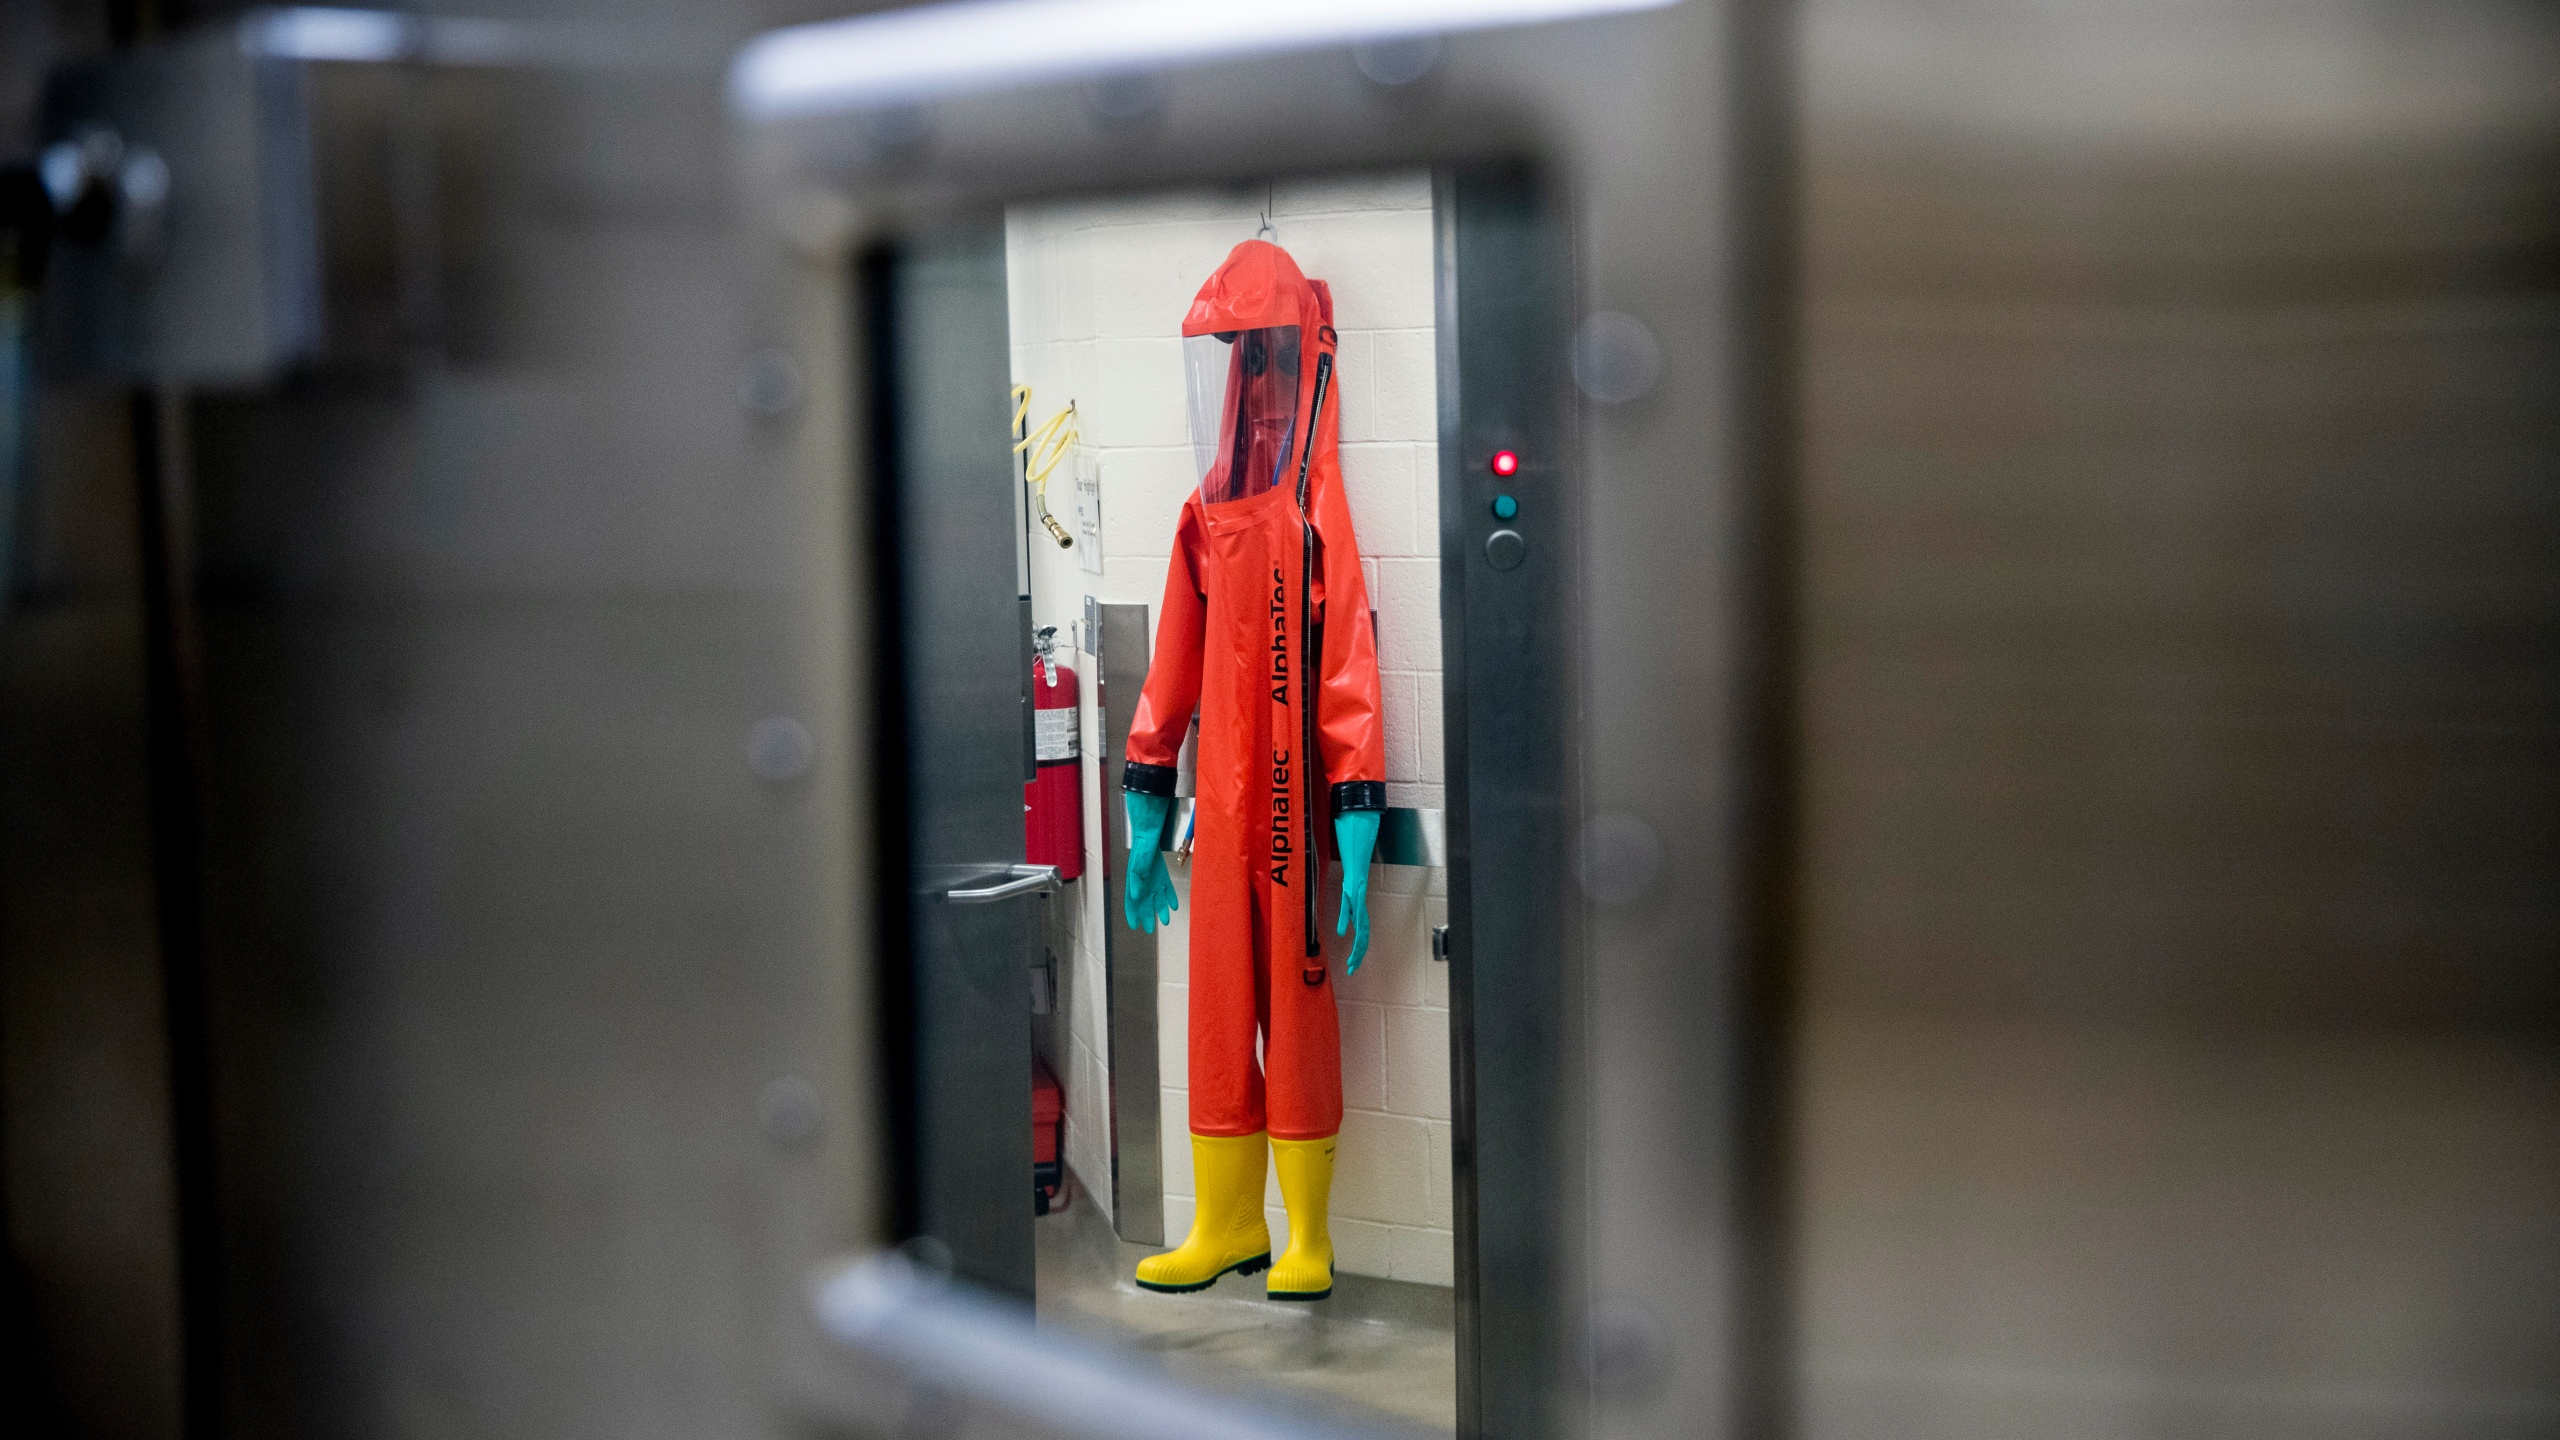 In this March 19, 2020, file photo, a biosafety protective suit for handling viral diseases are hung up in a biosafety level 4 training facility at U.S. Army Medical Research and Development Command at Fort Detrick in Frederick, Md., where scientists are working to help develop solutions to prevent, detect and treat the coronavirus. (AP Photo/Andrew Harnik)